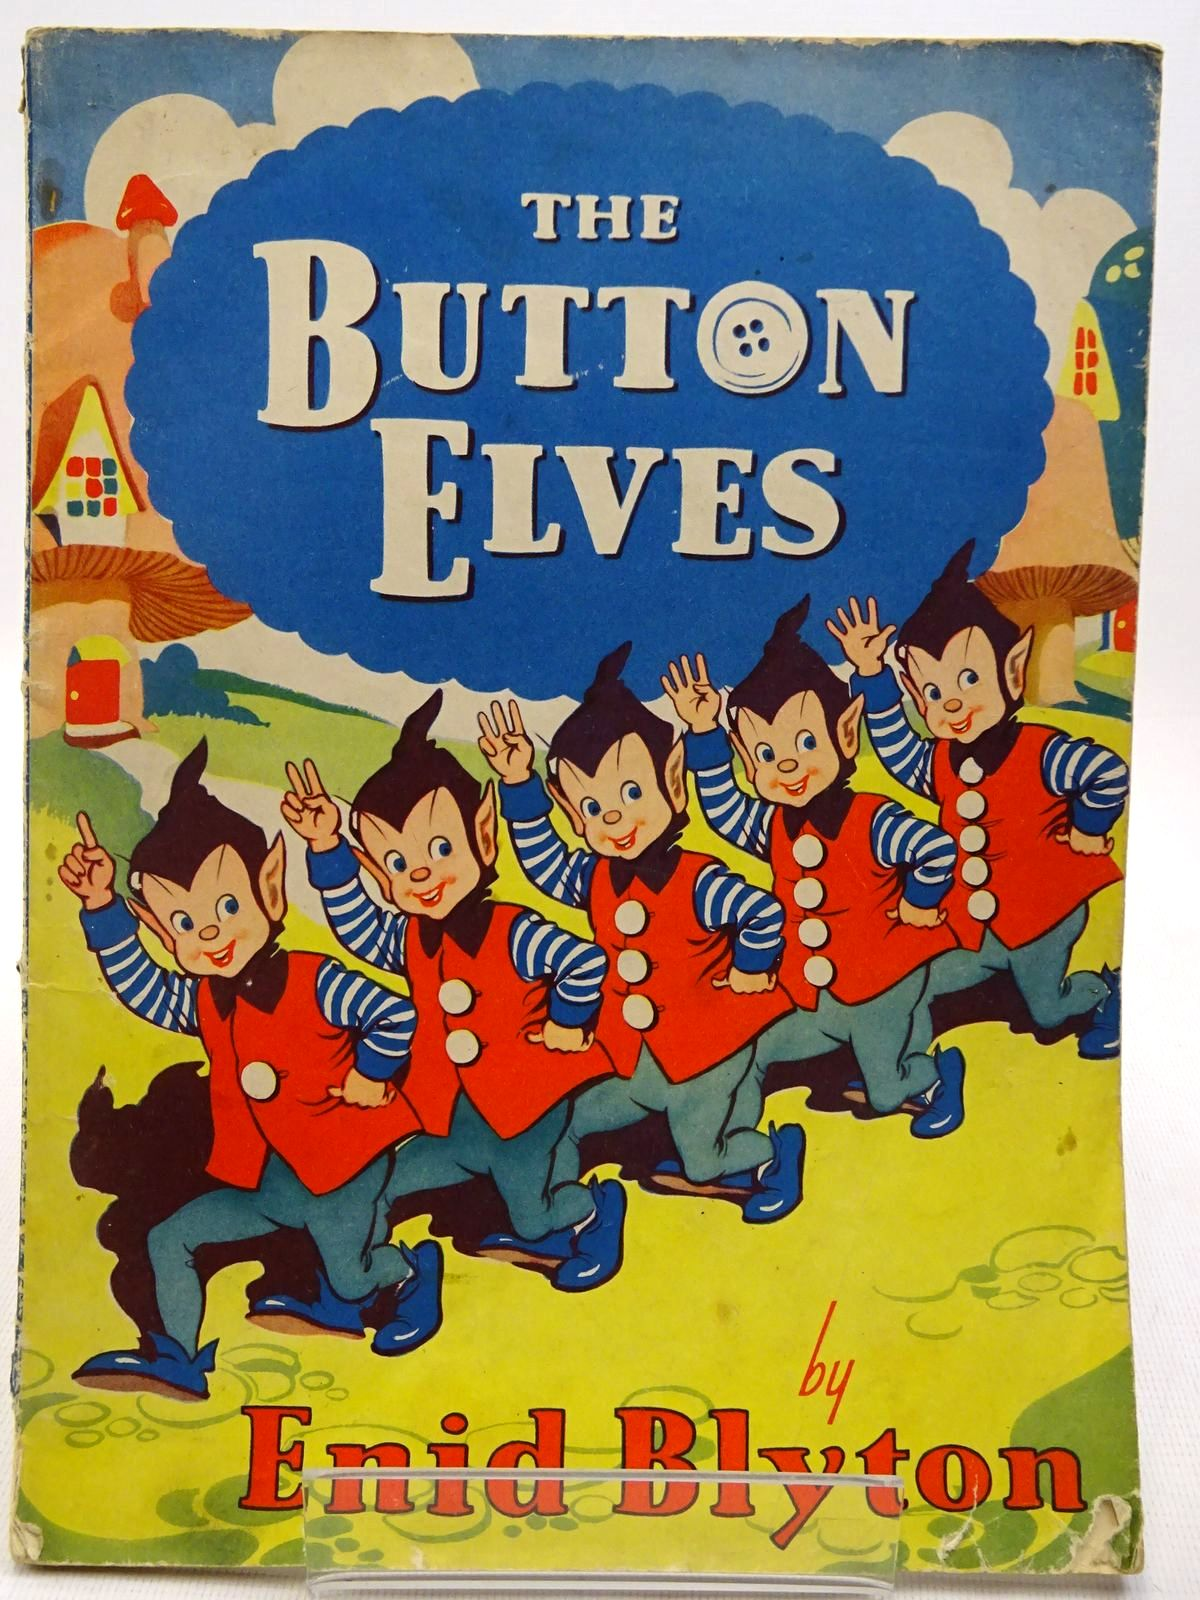 Photo of THE BUTTON ELVES written by Blyton, Enid published by J. Coker & Co. Ltd. (STOCK CODE: 2128865)  for sale by Stella & Rose's Books